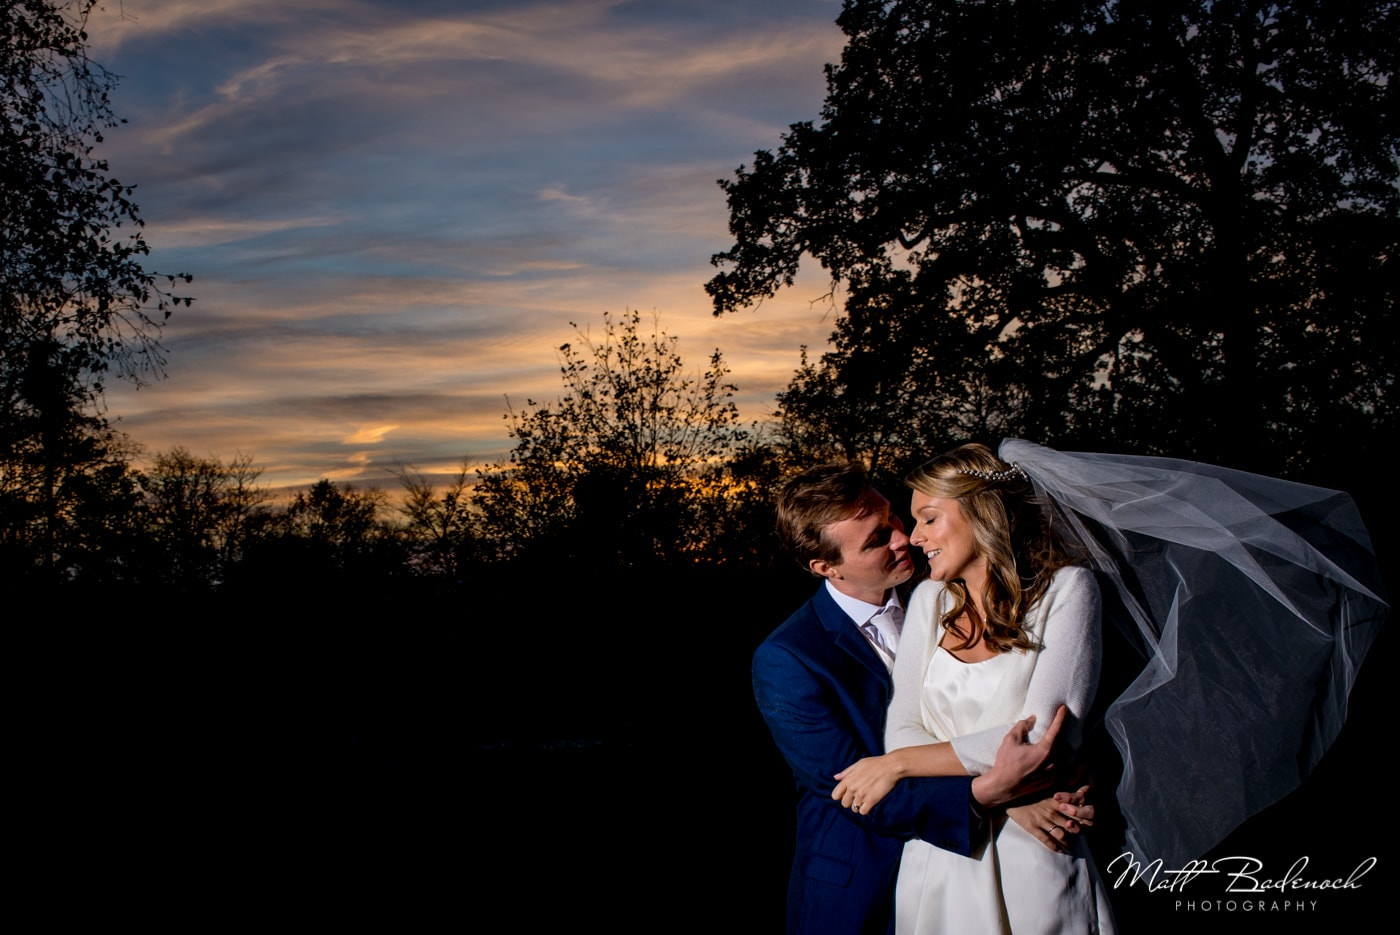 Bride and groom winter portrait during sunset